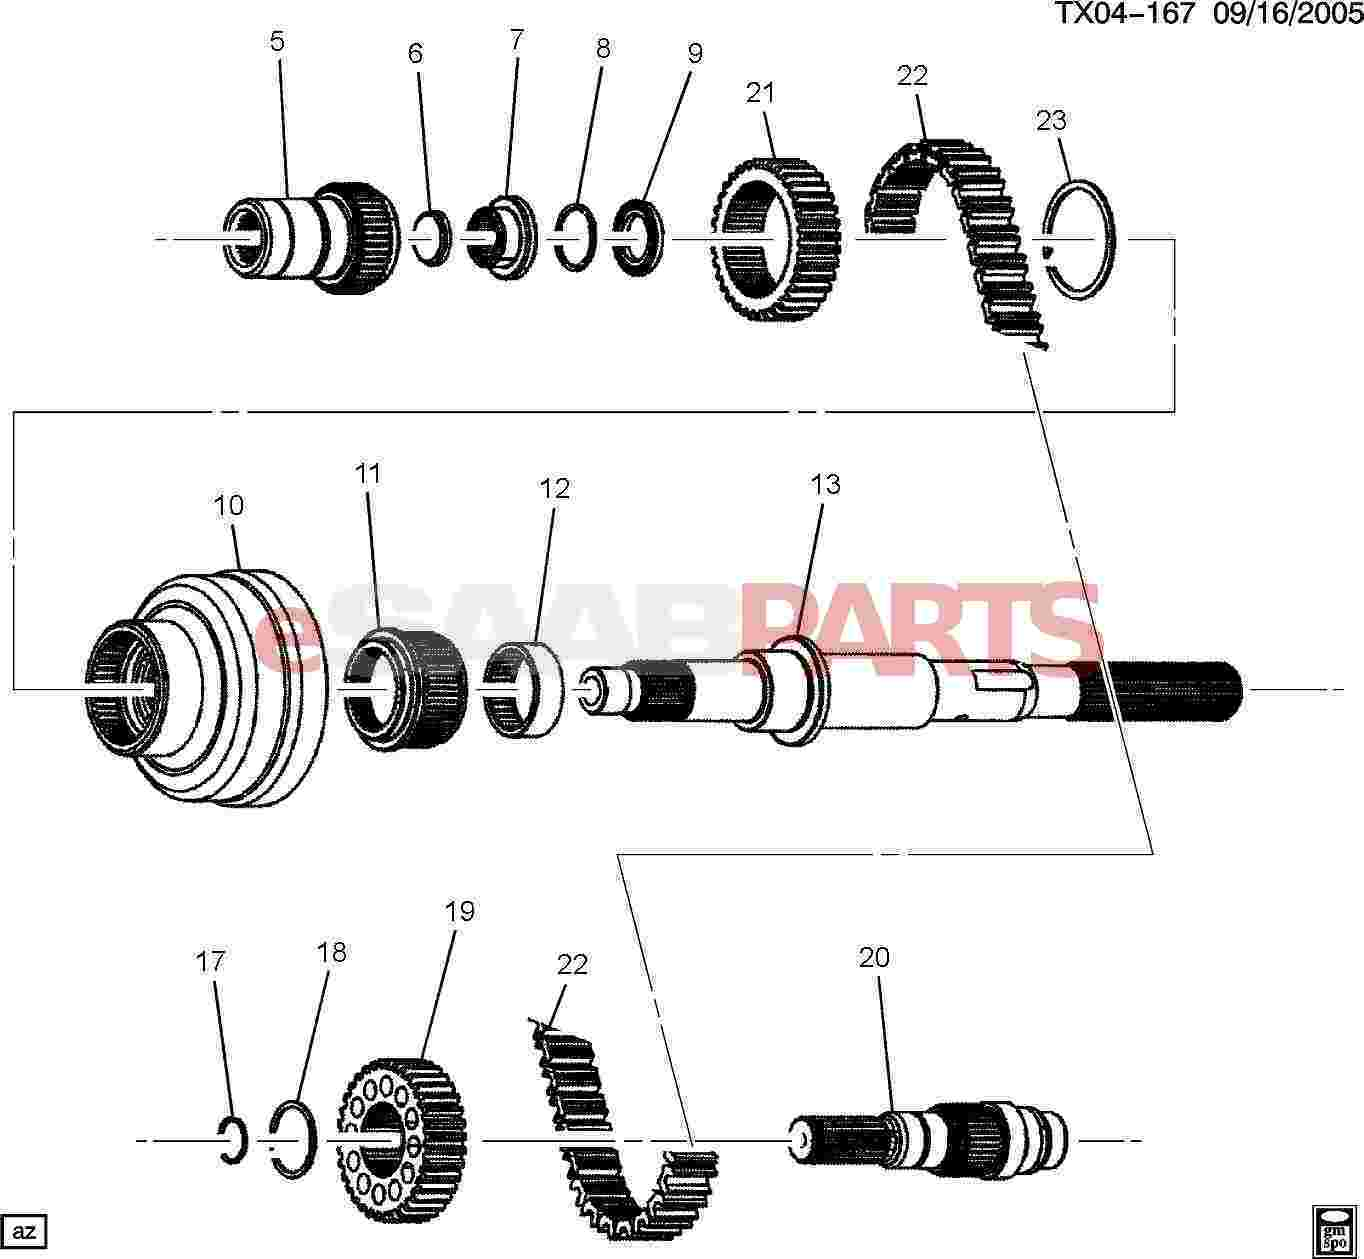 Lv moreover Saab 9 3 Fog Lights Wiring Diagram also 15817502 additionally Viewparts additionally 7598725. on saab 9 3 awd